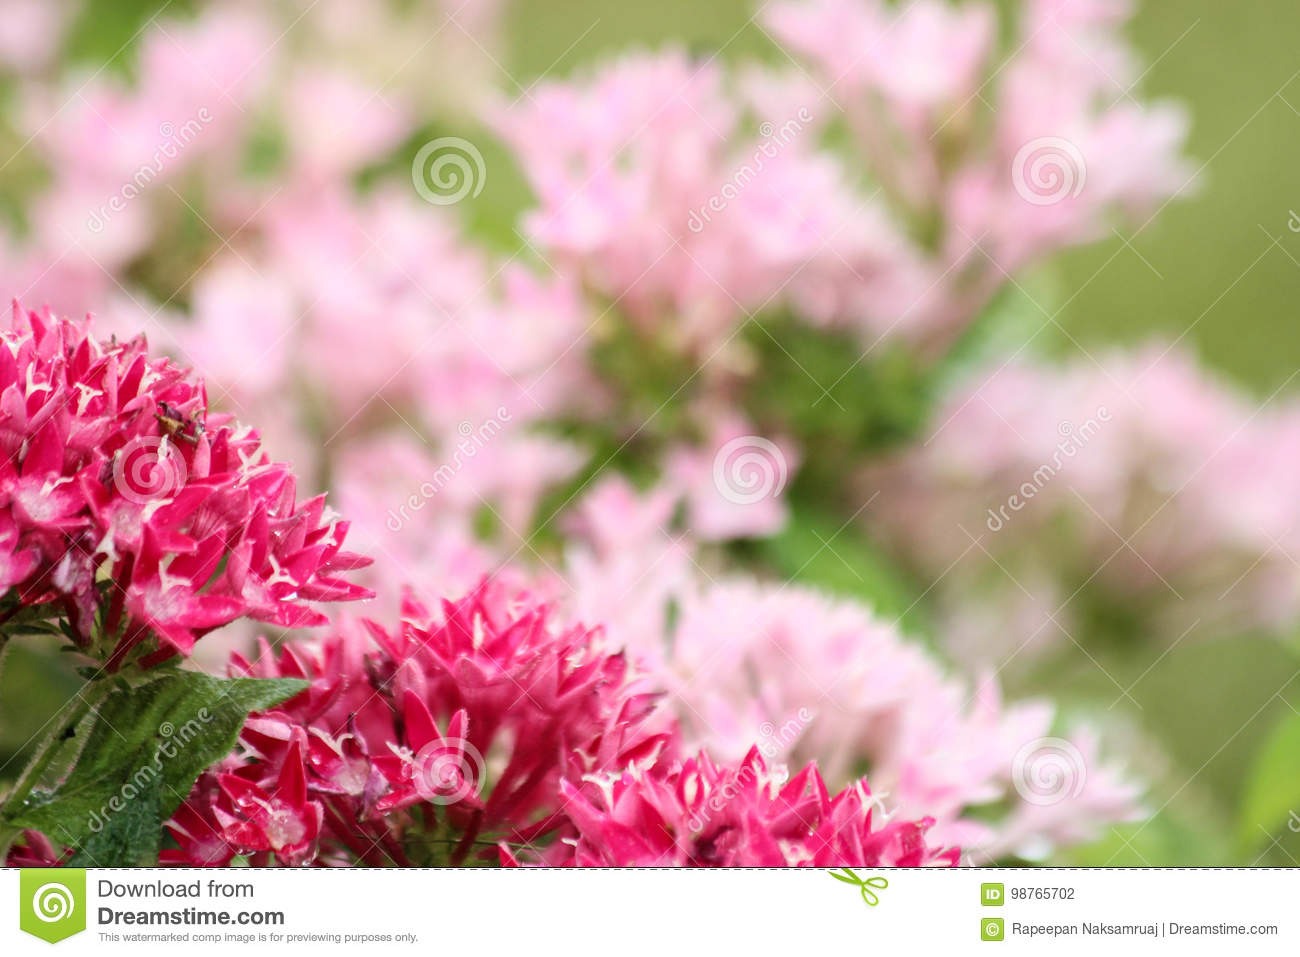 Red And Pink Flowers Blurred Background Stock Photo Image Of Card